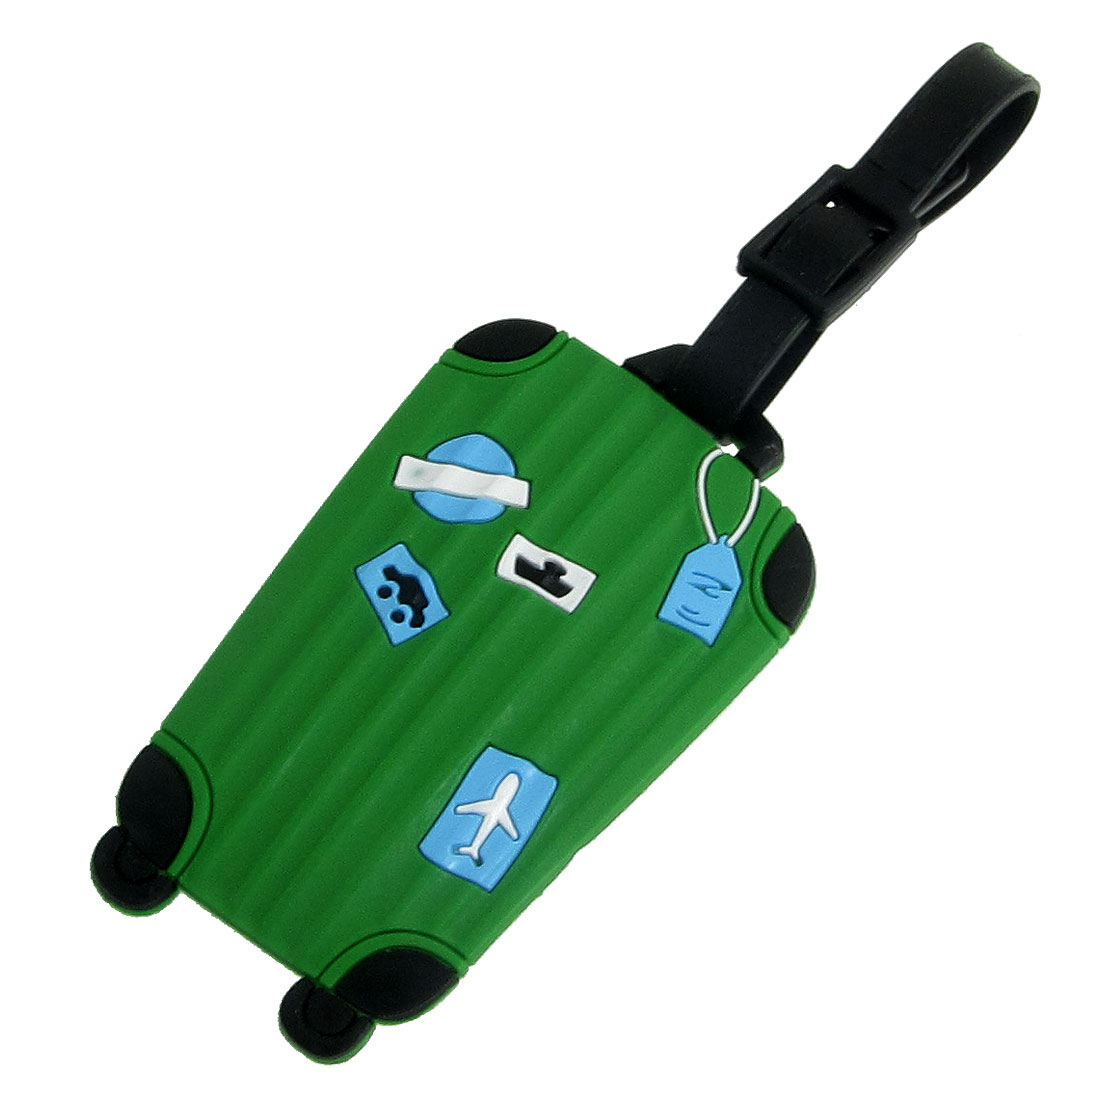 Luggage Shaped Green Soft Plastic Tag for Suitcase